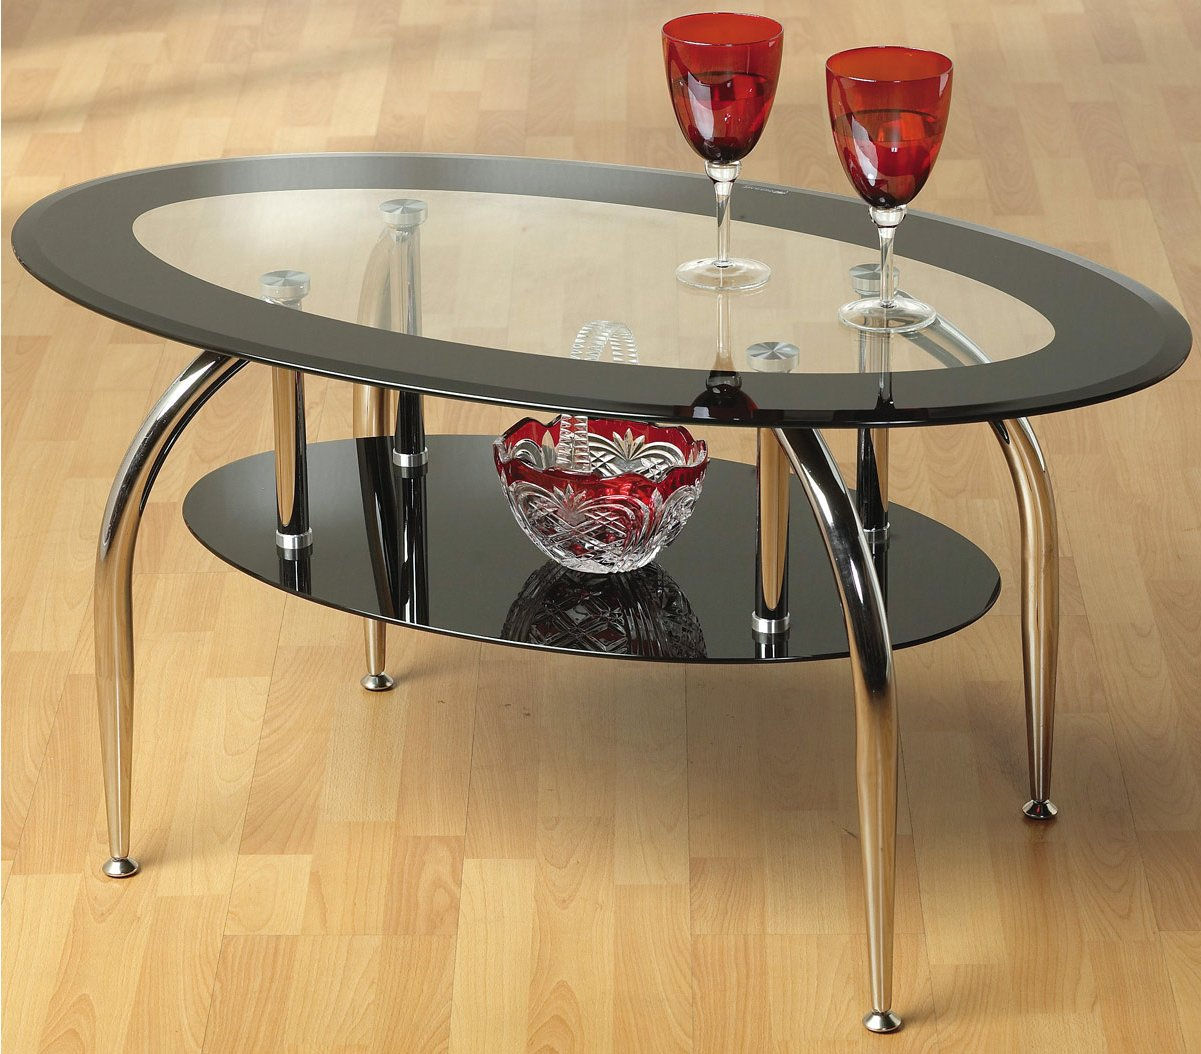 Black And Chrome Coffee Table Set: Caravelle Black Glass Coffee Table With Chrome Legs